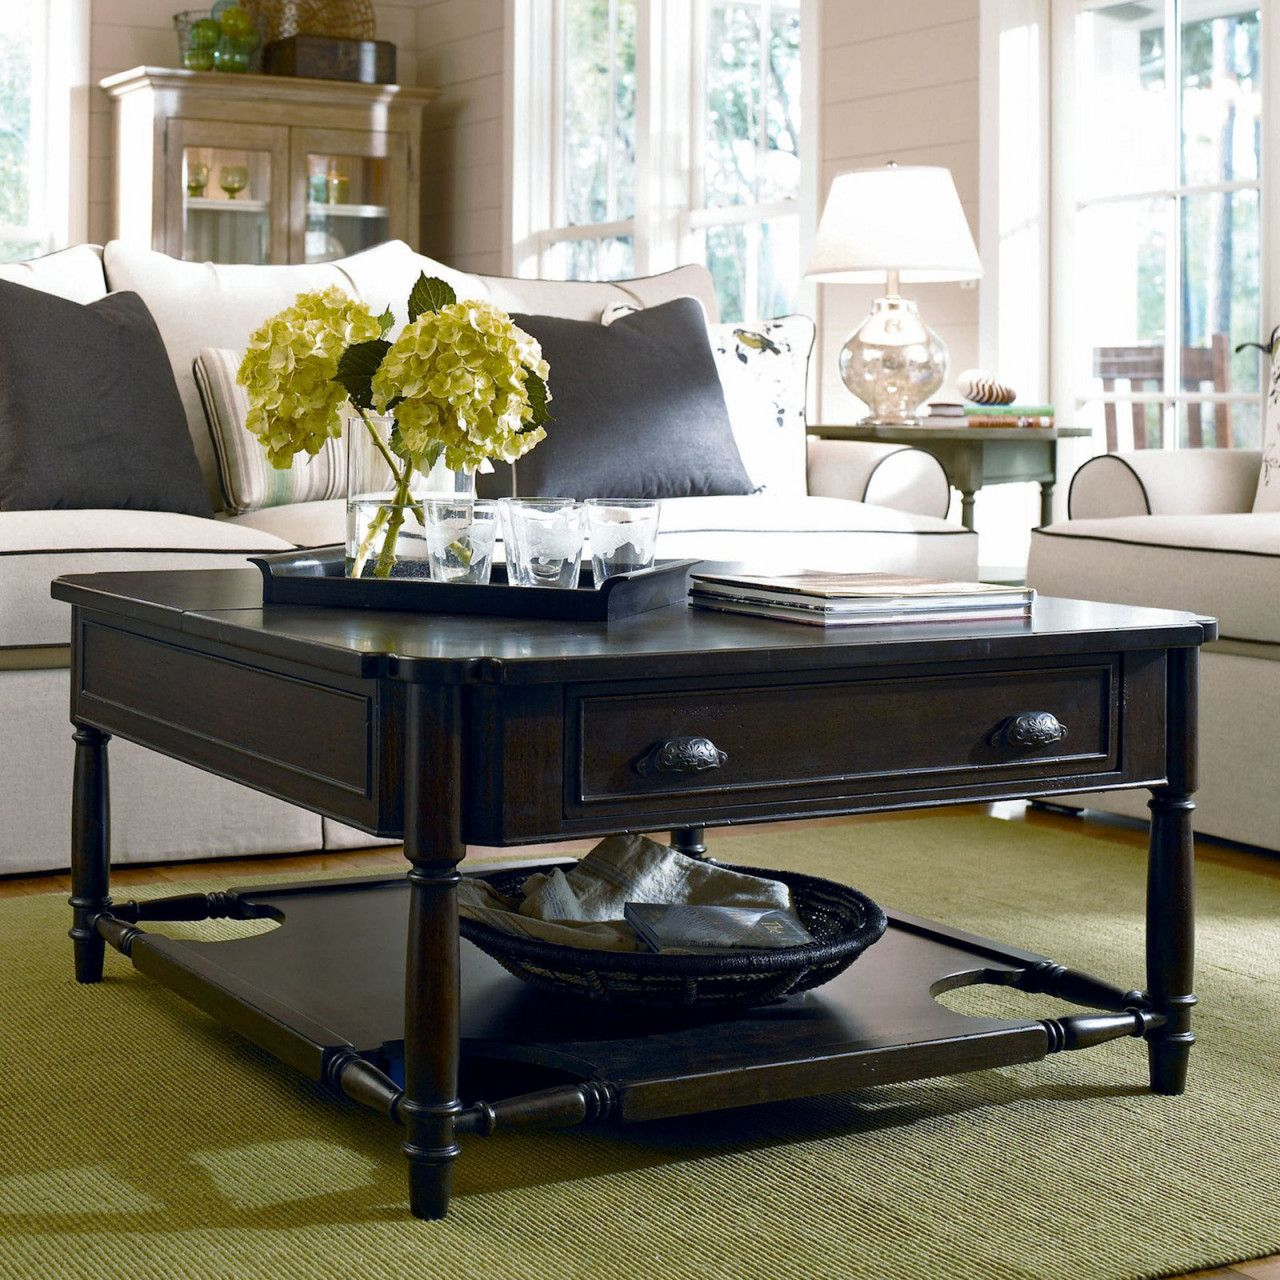 Fine 201 New Paula Deen Lift Top Coffee Table 2017 Desk Office Ibusinesslaw Wood Chair Design Ideas Ibusinesslaworg